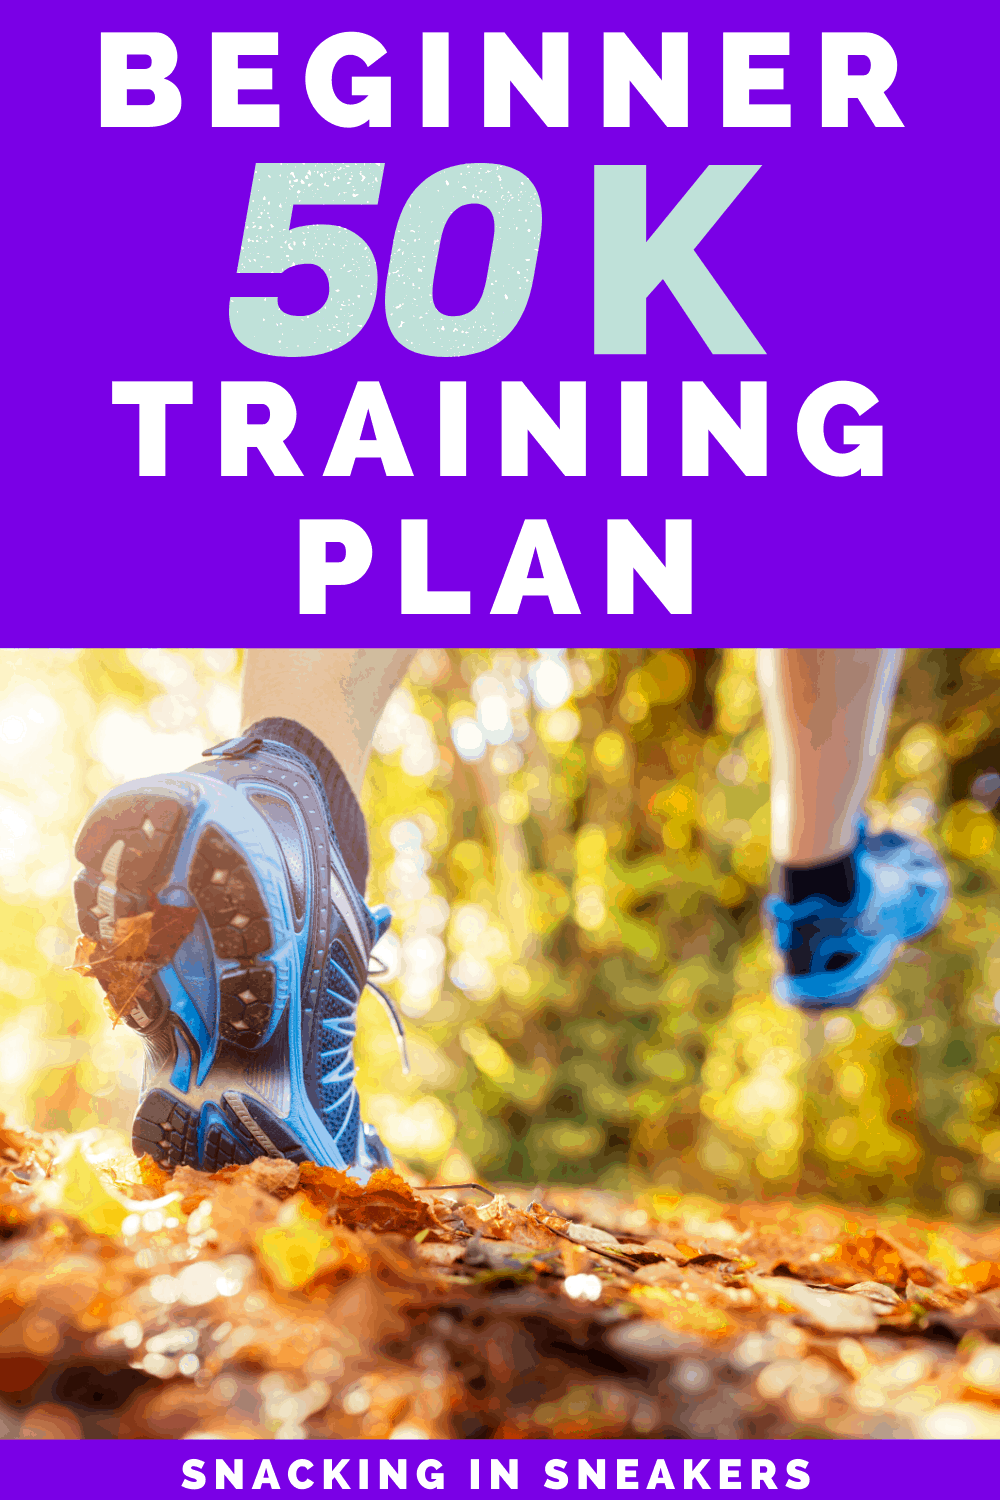 a person running outside in the fall training for a 50K